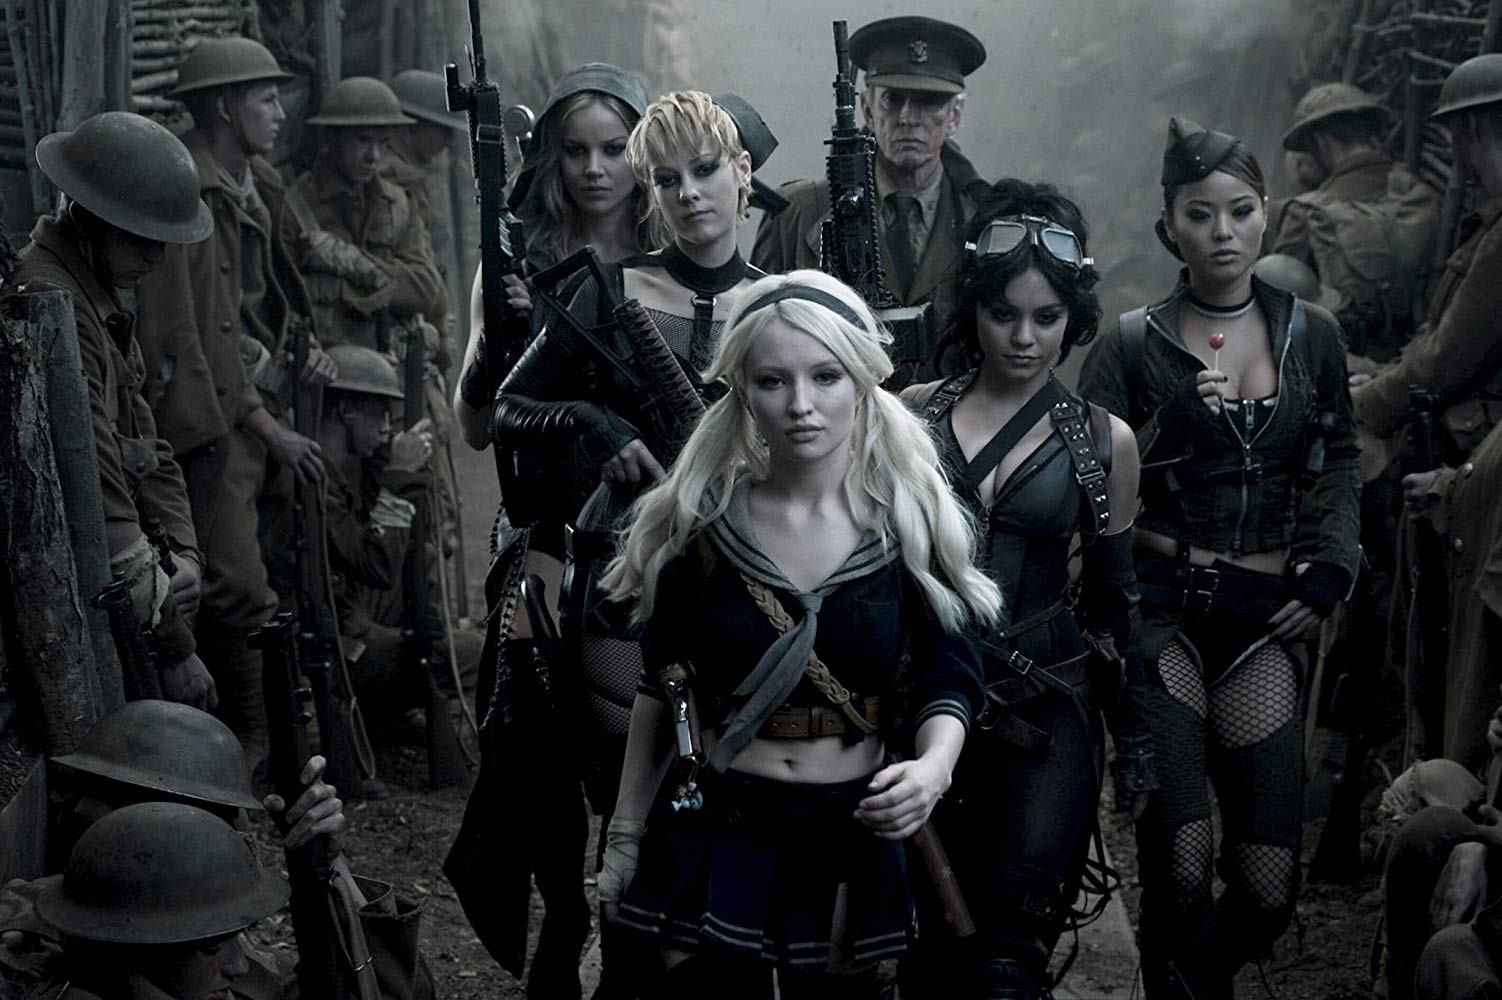 Girls in lingerie on a WWI battlefield - Sweet Pea (Abbie Cornish), Rocket (Jena Malone), Scott Glenn, Blondie (Vanessa Hudgens), Amber (Jamie Chung) and Sweet Pea (Emily Browning) Sucker Punch (2011)